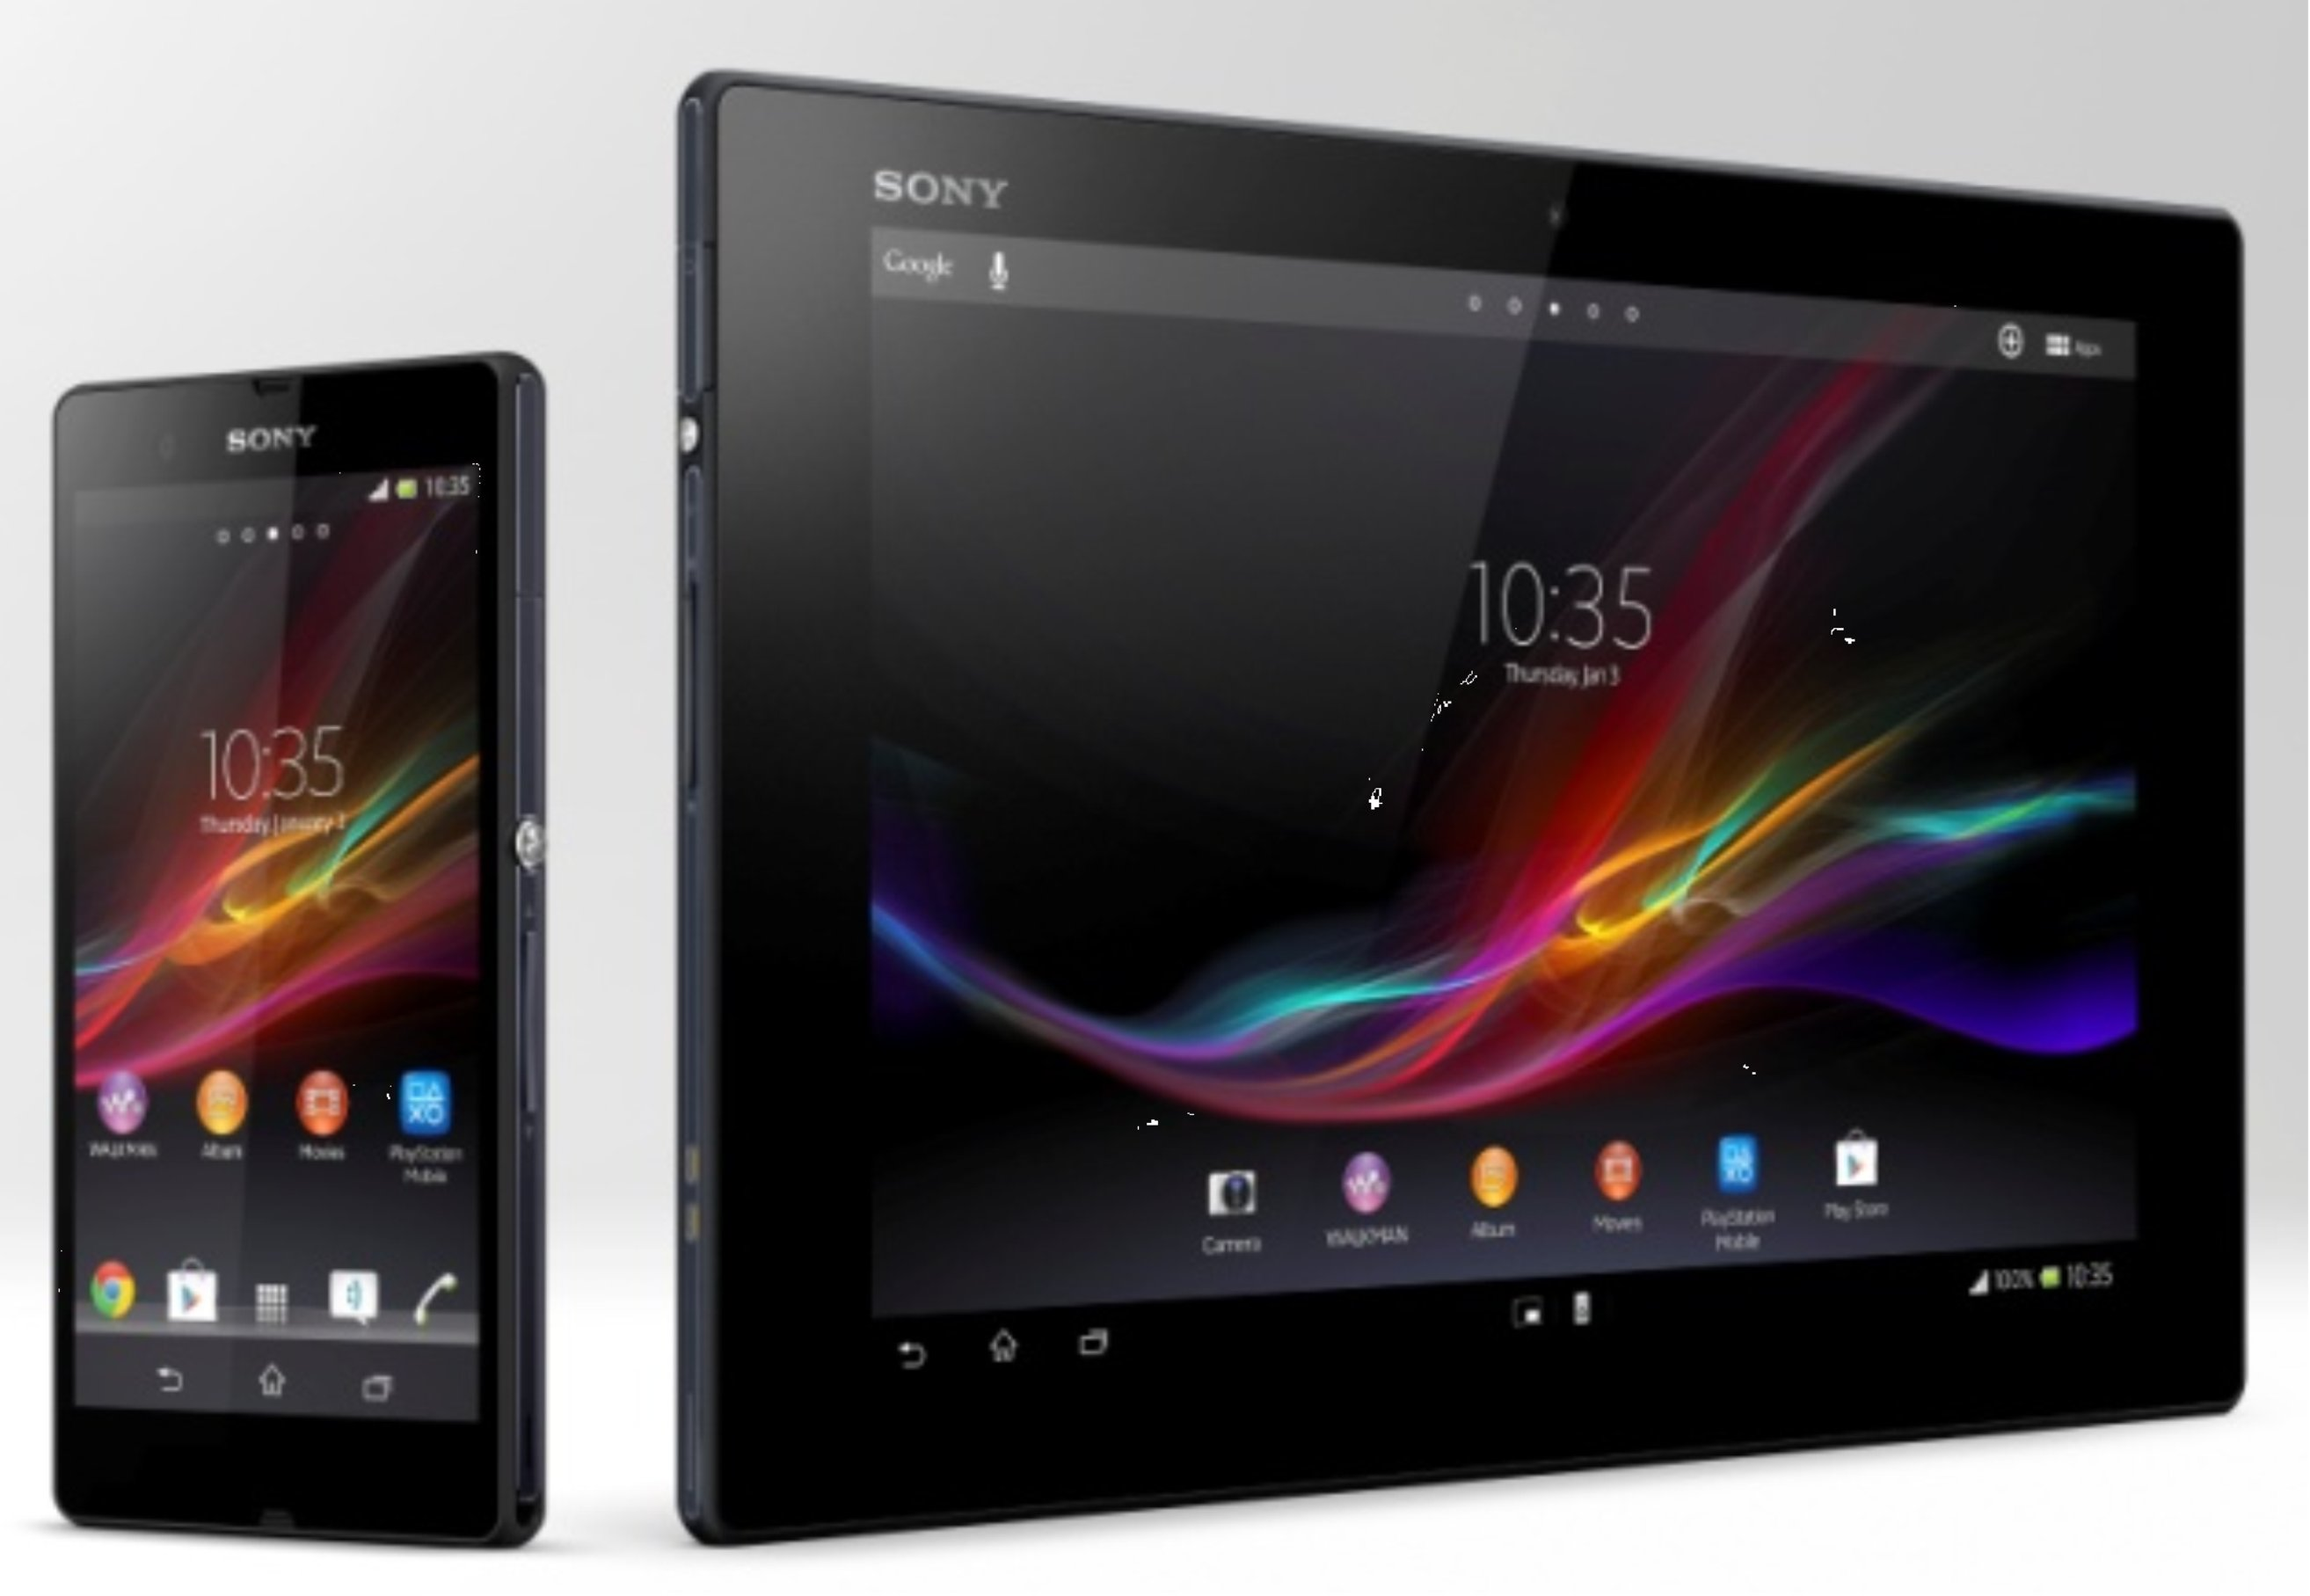 Sony-Xperia-Z-and-Tablet